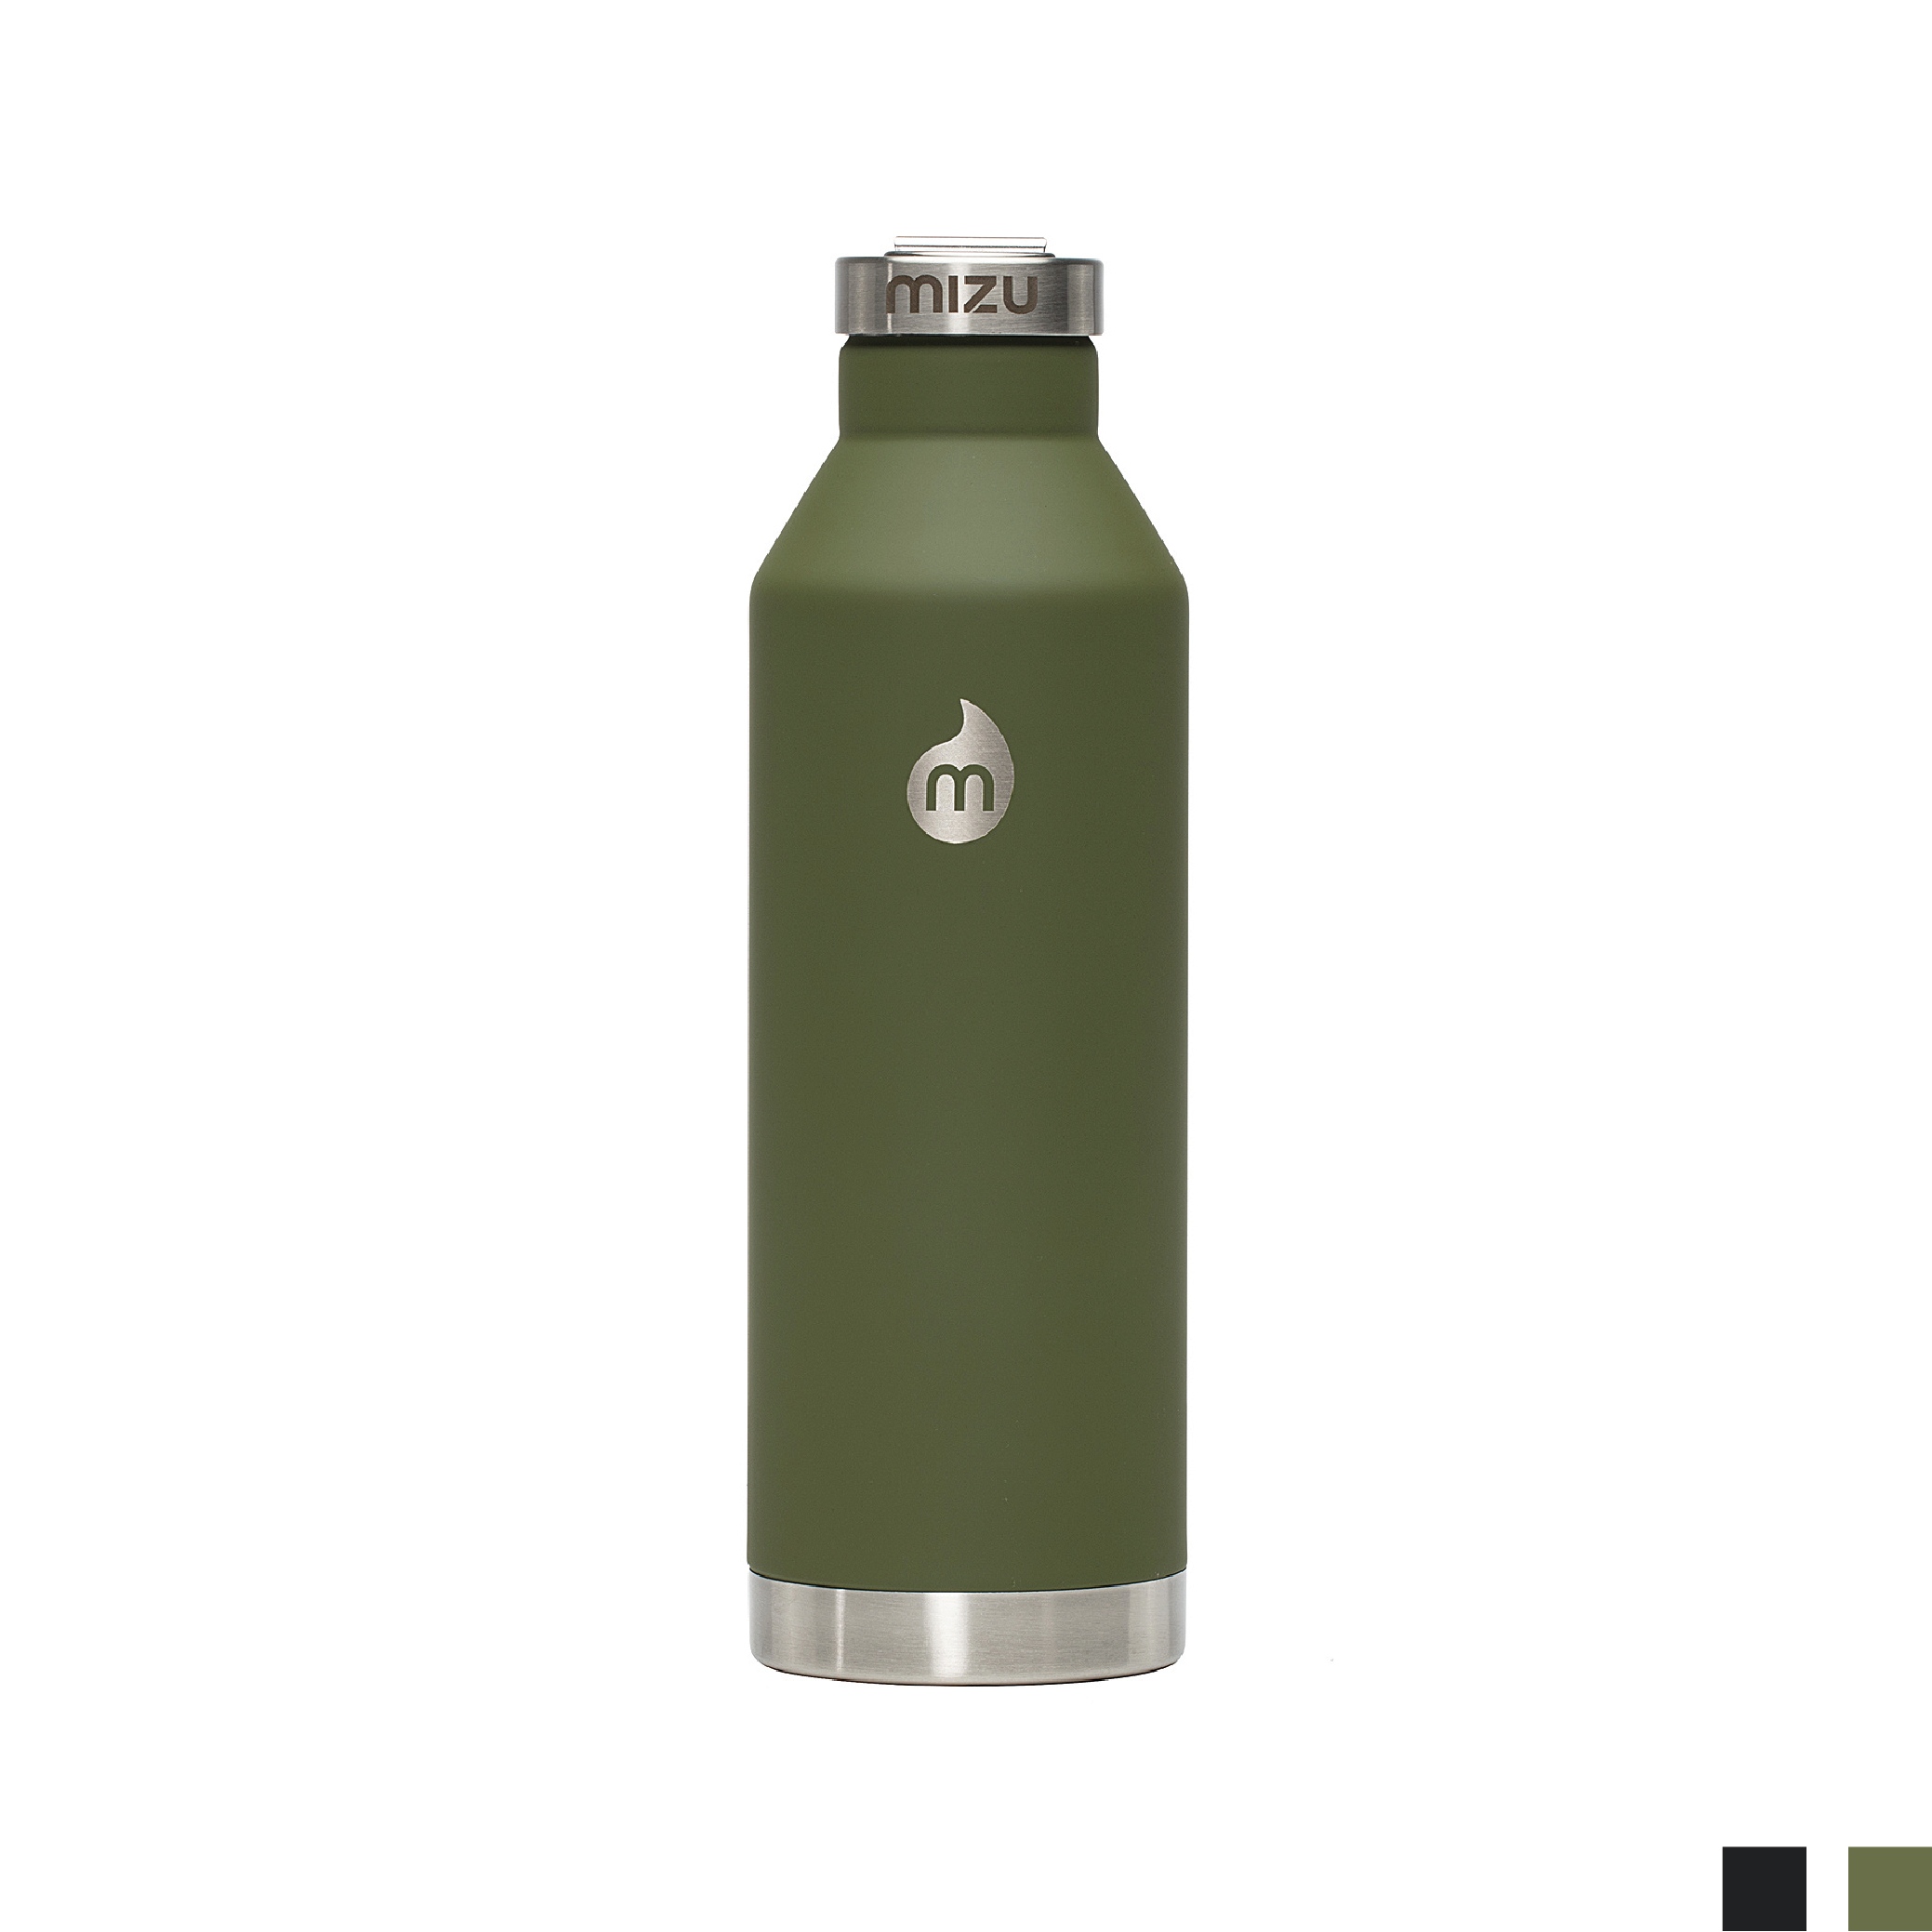 V8    By  Mizu Life     The perfectly sized insulated bottle for when you need that extra hydration. It also fits 2 ½ beers for after work.    SHOP NOW          £24